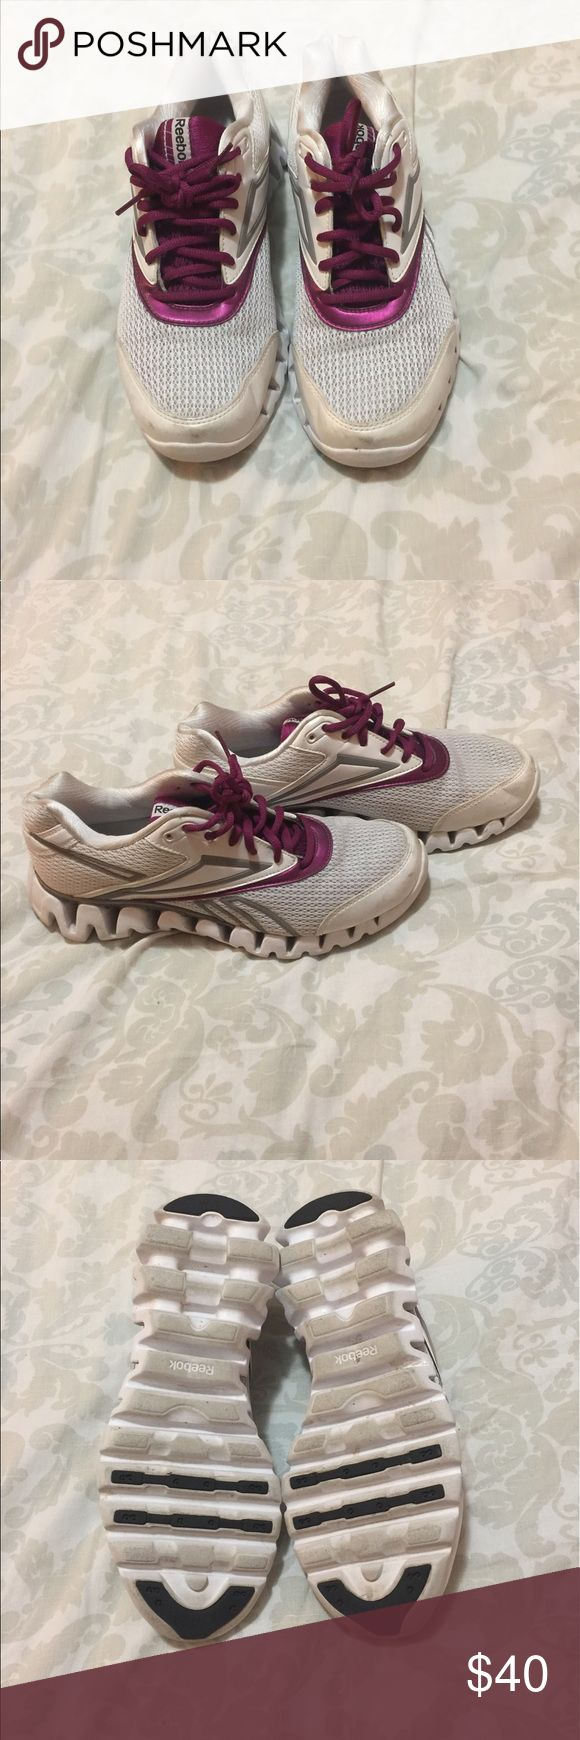 Reebok zig zag running shoes In good condition. True to size. Color is white and a maroon color. There is no stench to shoe.  Very comfortable. Prices are negotiable make me a offer. Reebok Shoes Sneakers